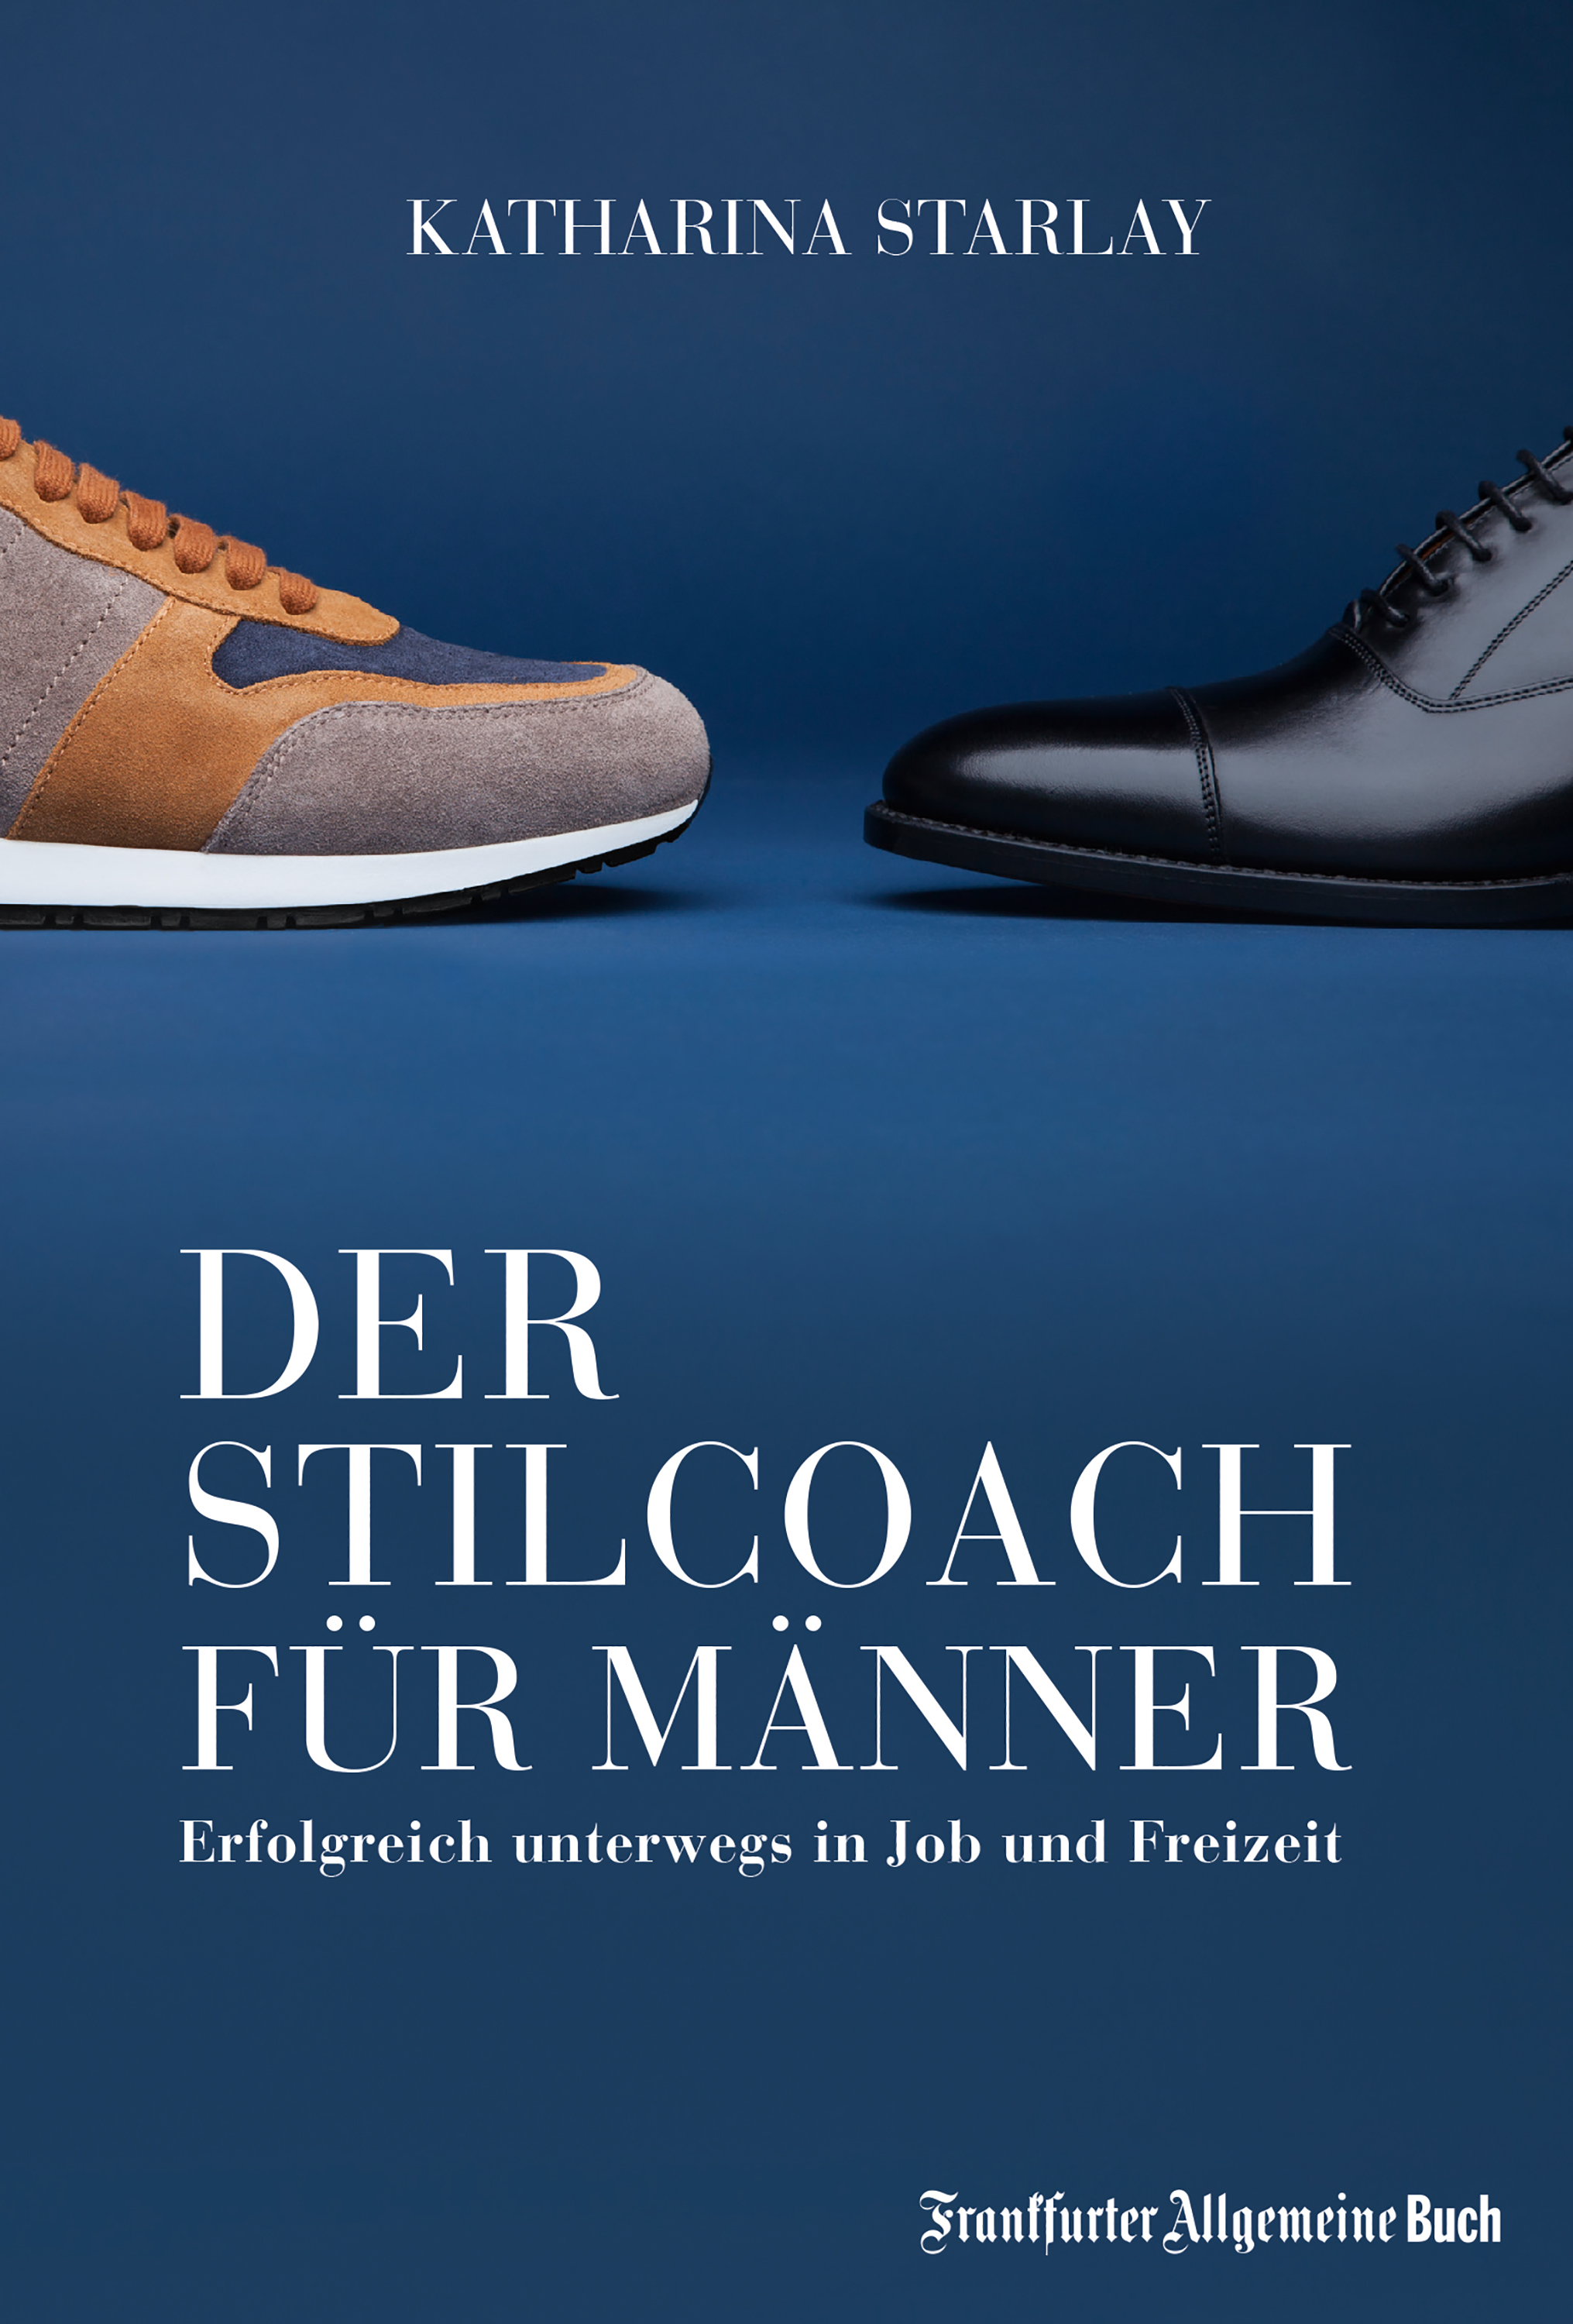 Der_Stilcoach_fuer_Maenner_9783956012259